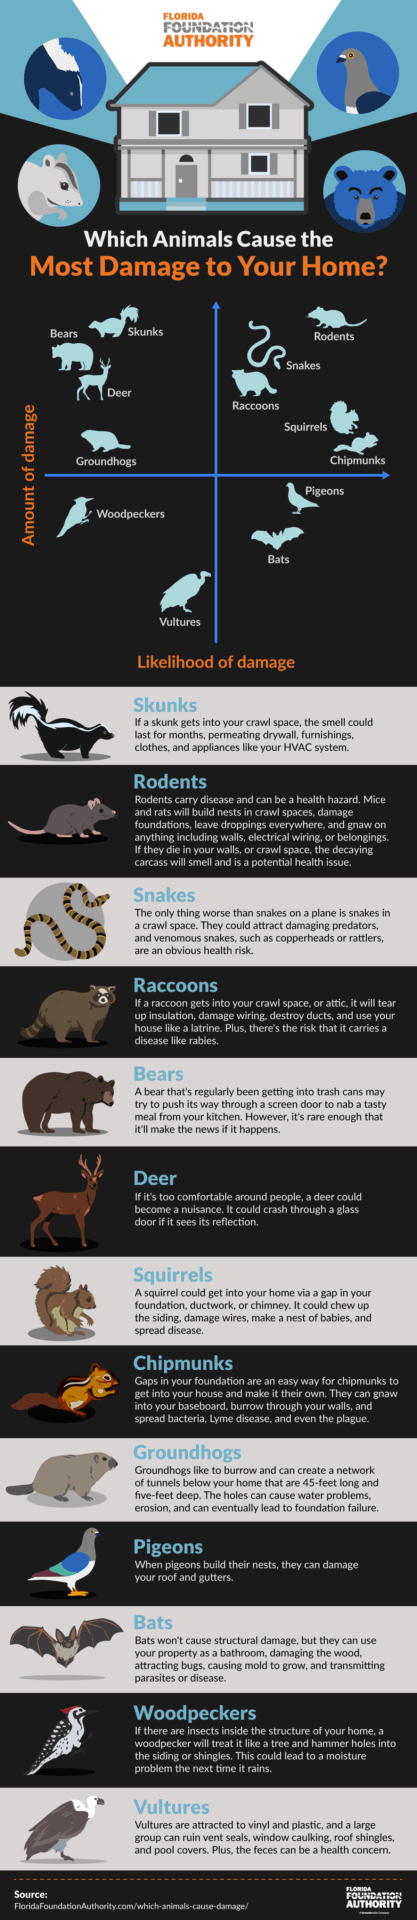 Which animals cause the most damage to your home